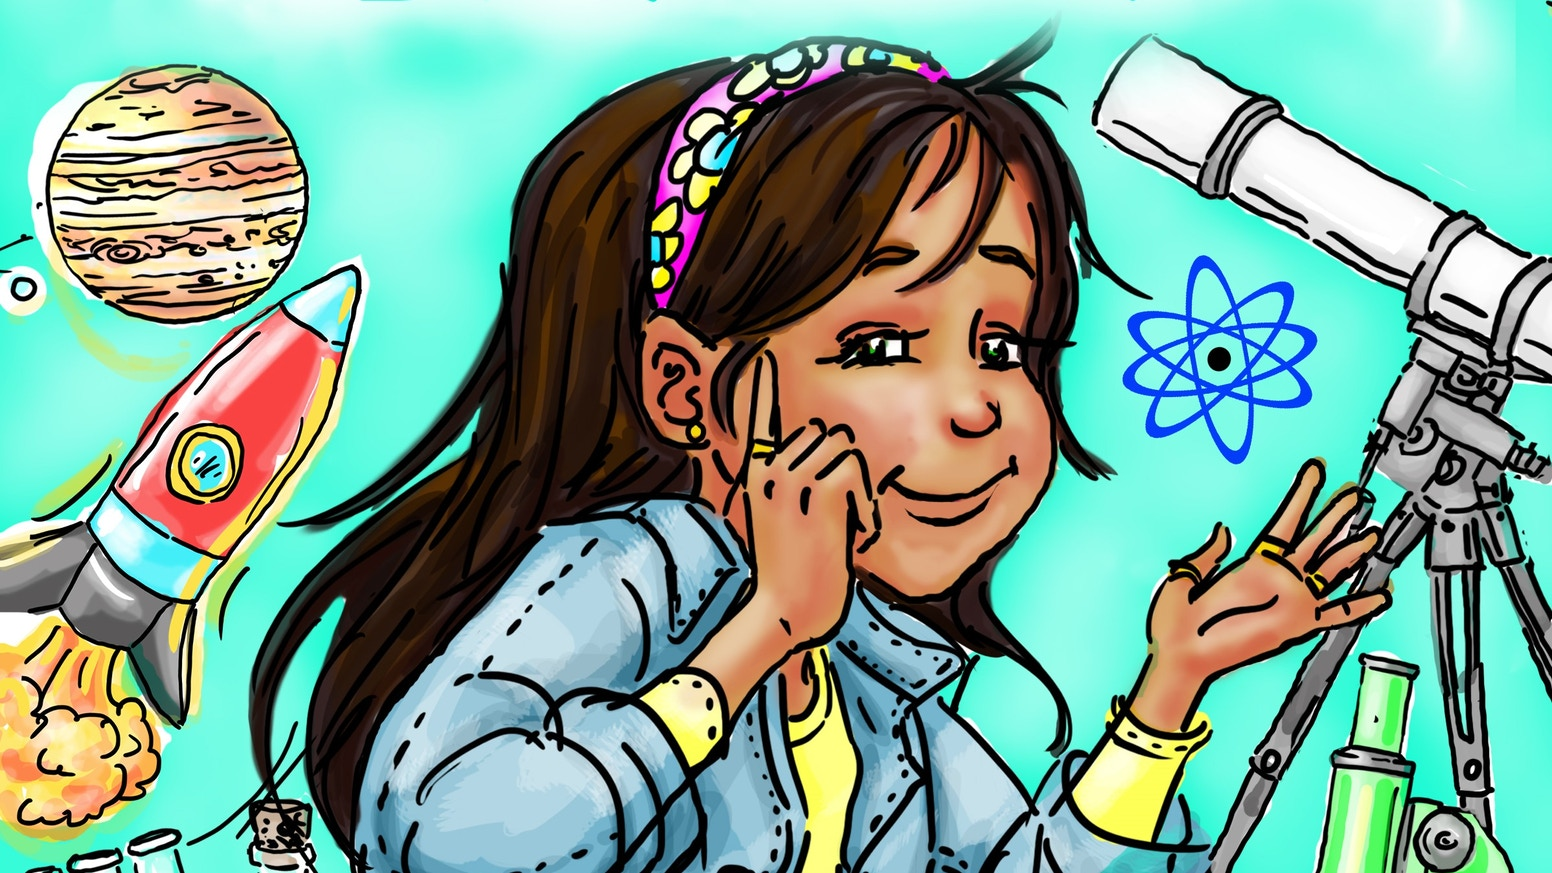 Elara is a young girl who loves Science, Technology, Engineering & Math who conquers obstacles & shows her friends how fun STEM can be!